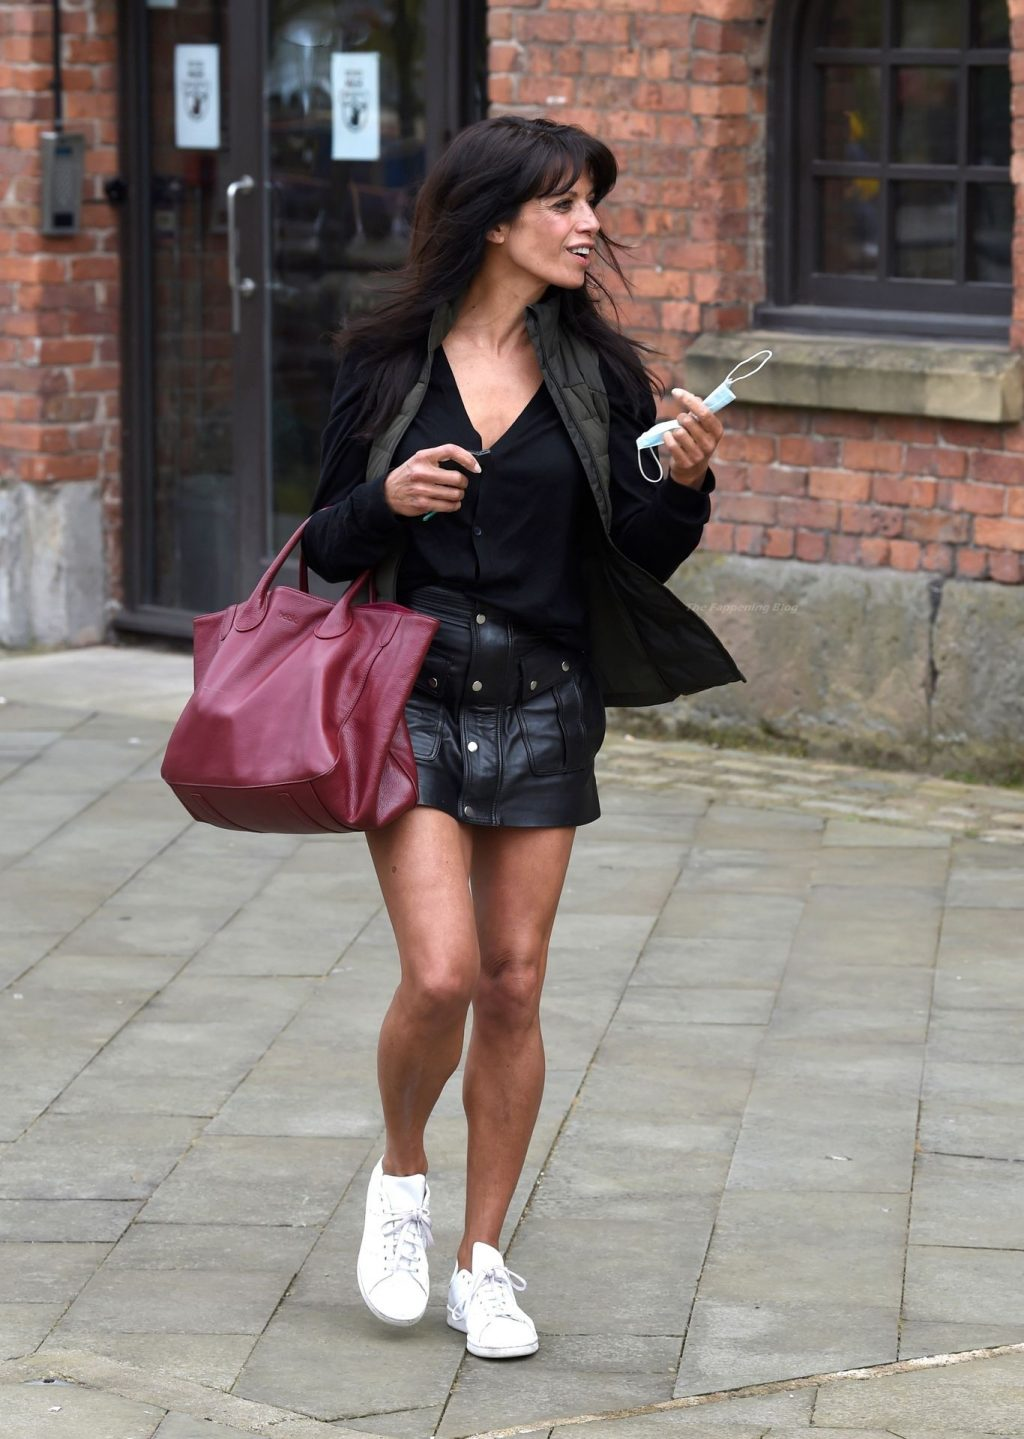 Jenny Powell Puts on a Leggy Display in Manchester (30 Photos)